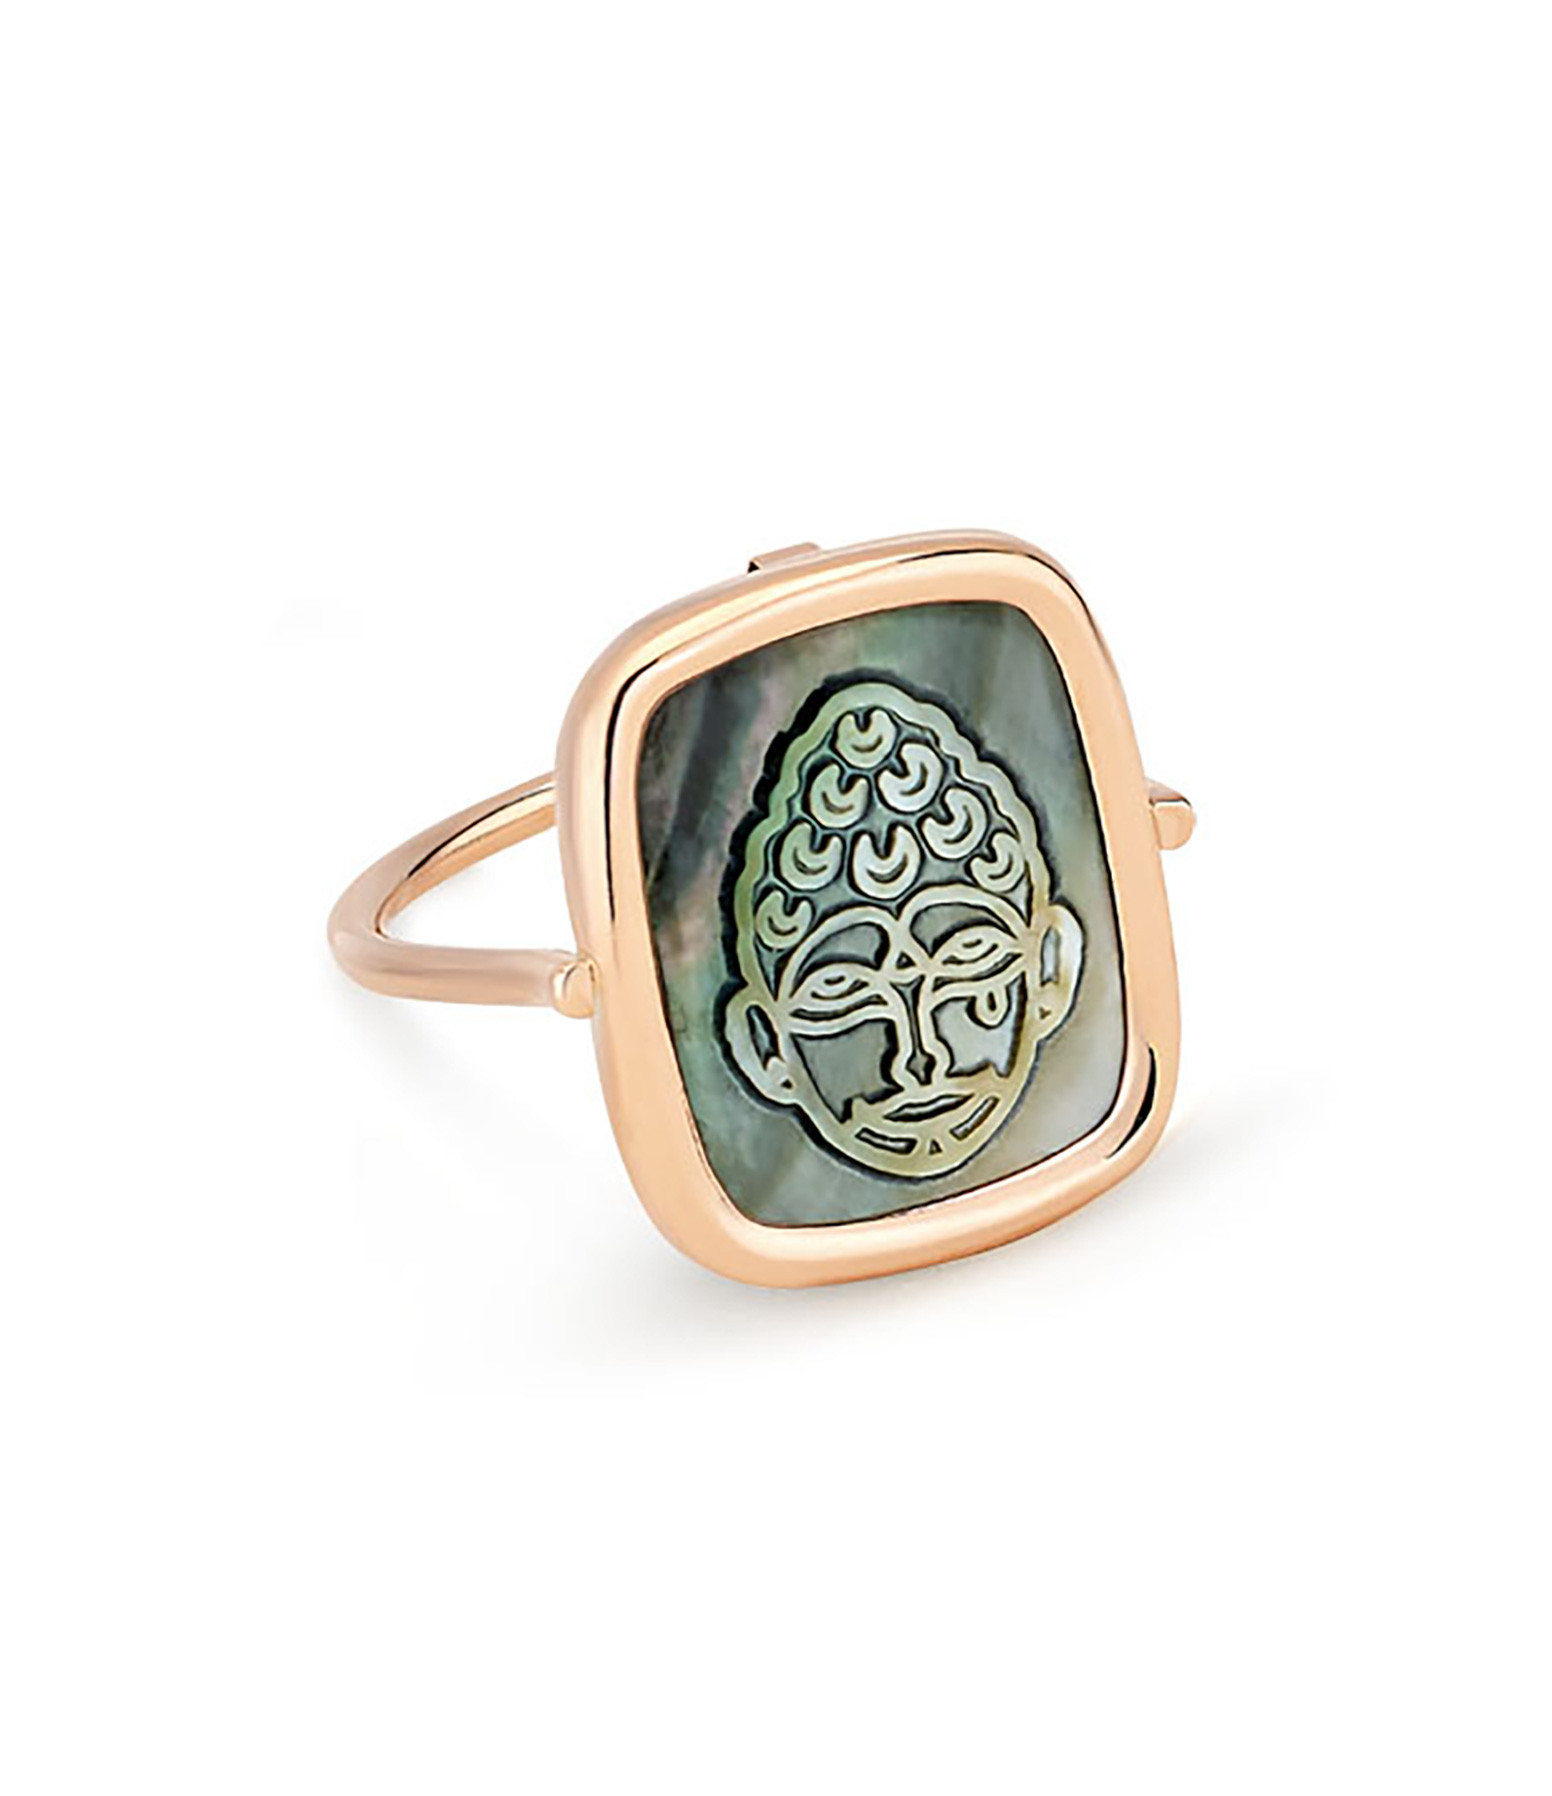 GINETTE NY - Bague Bliss Buddha Black Mop Or Rose